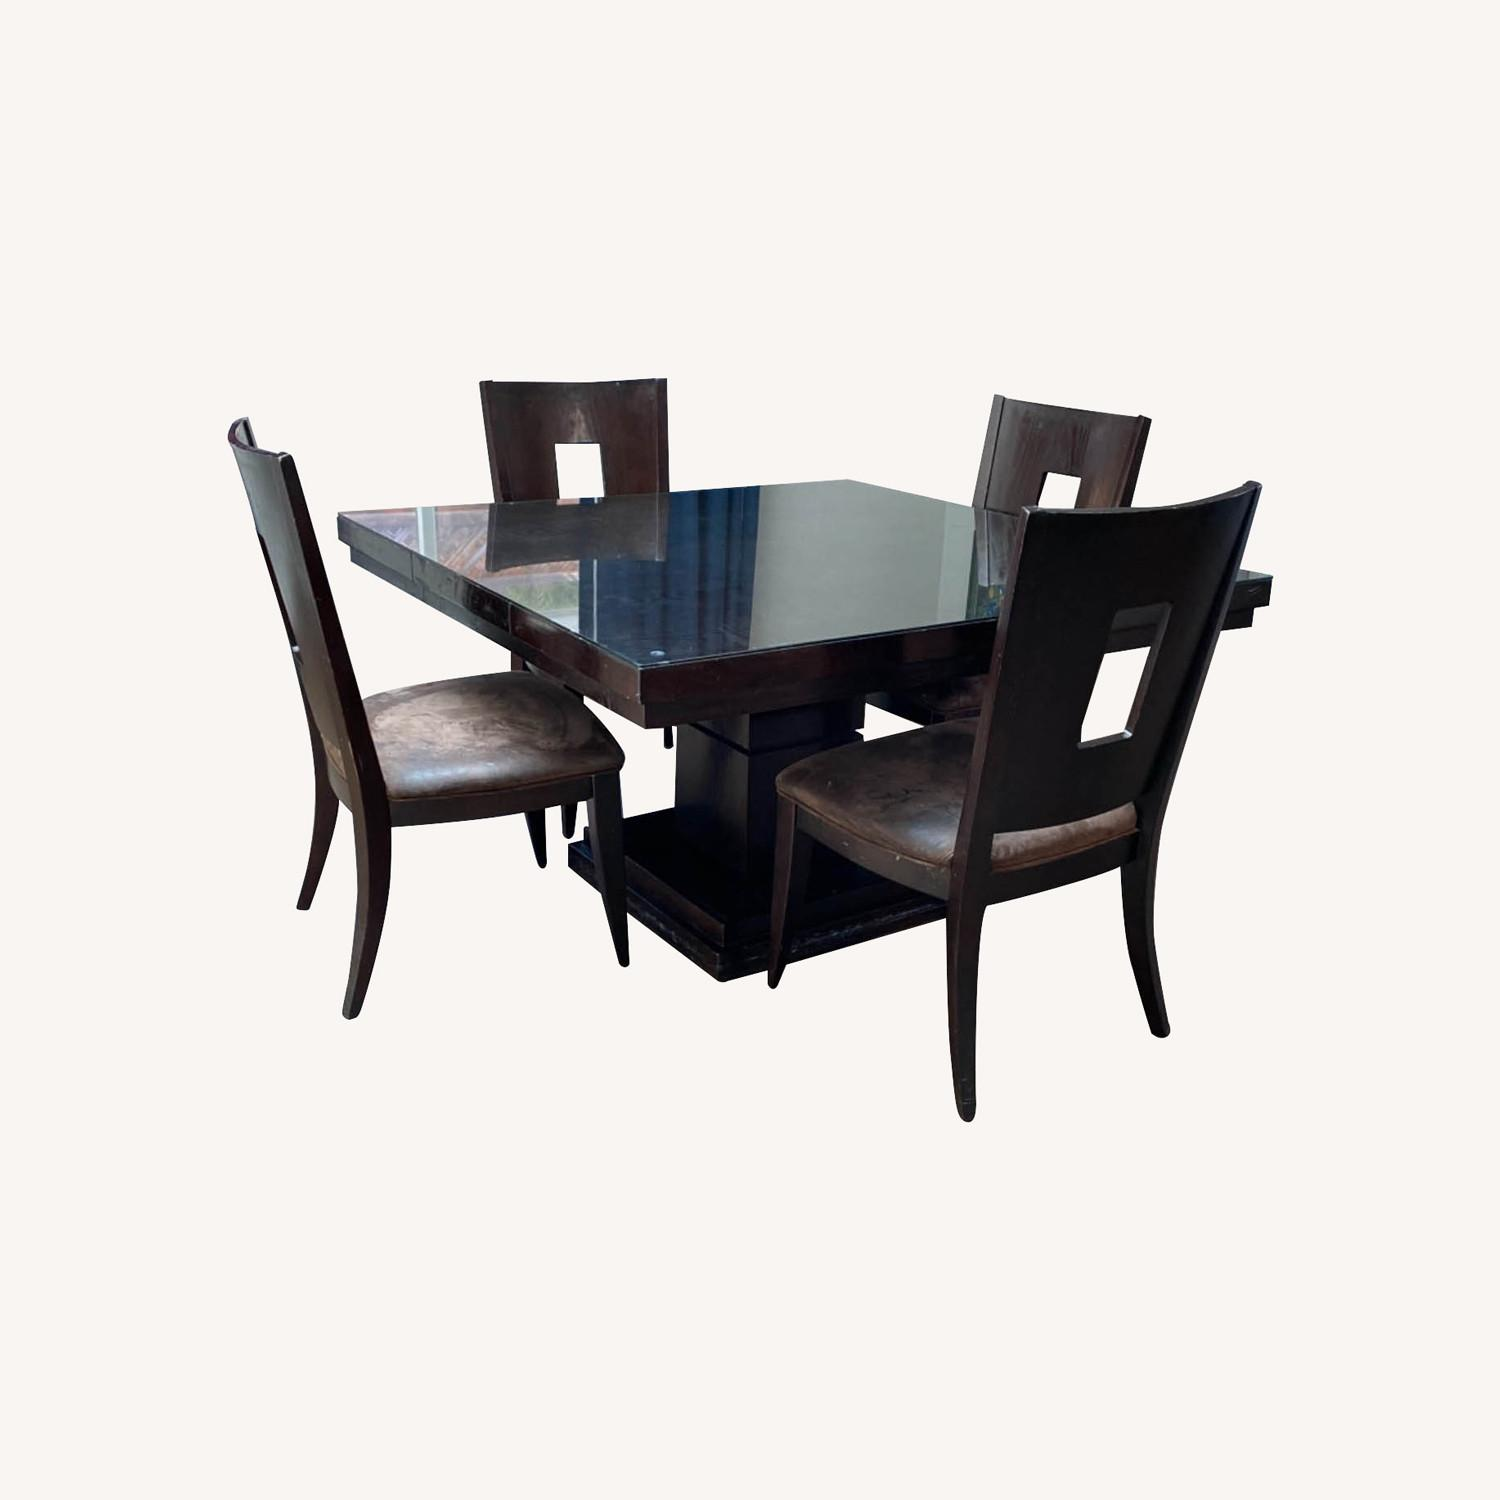 Square Pedestal Wooden Dining Table with 4 Chairs - image-0